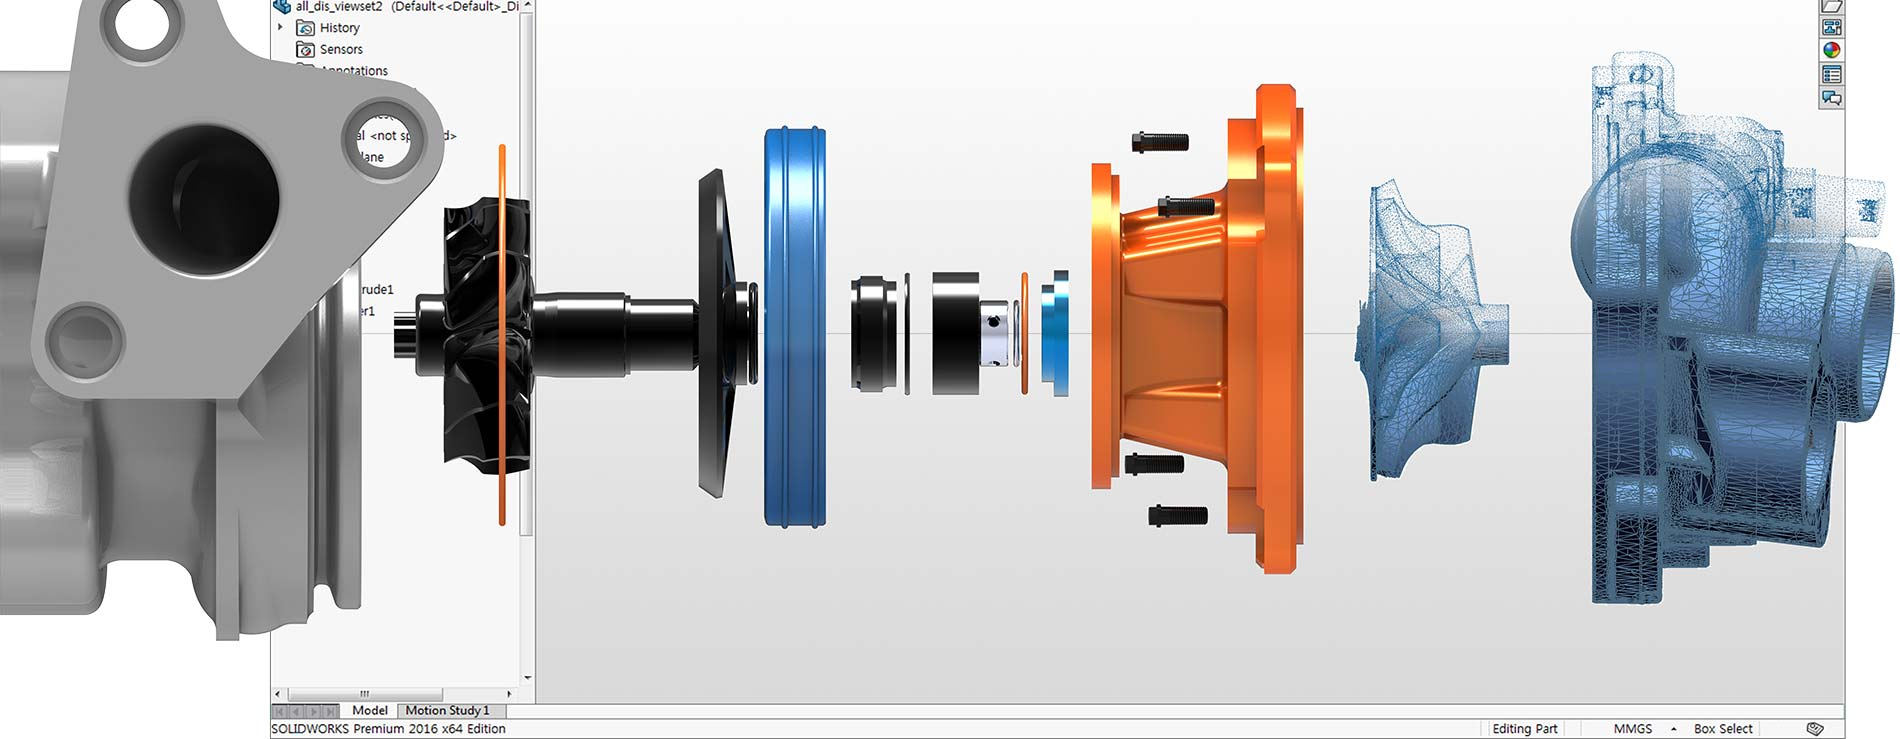 Metrology Services | 3D Laser Scanning Services | Exact Metrology